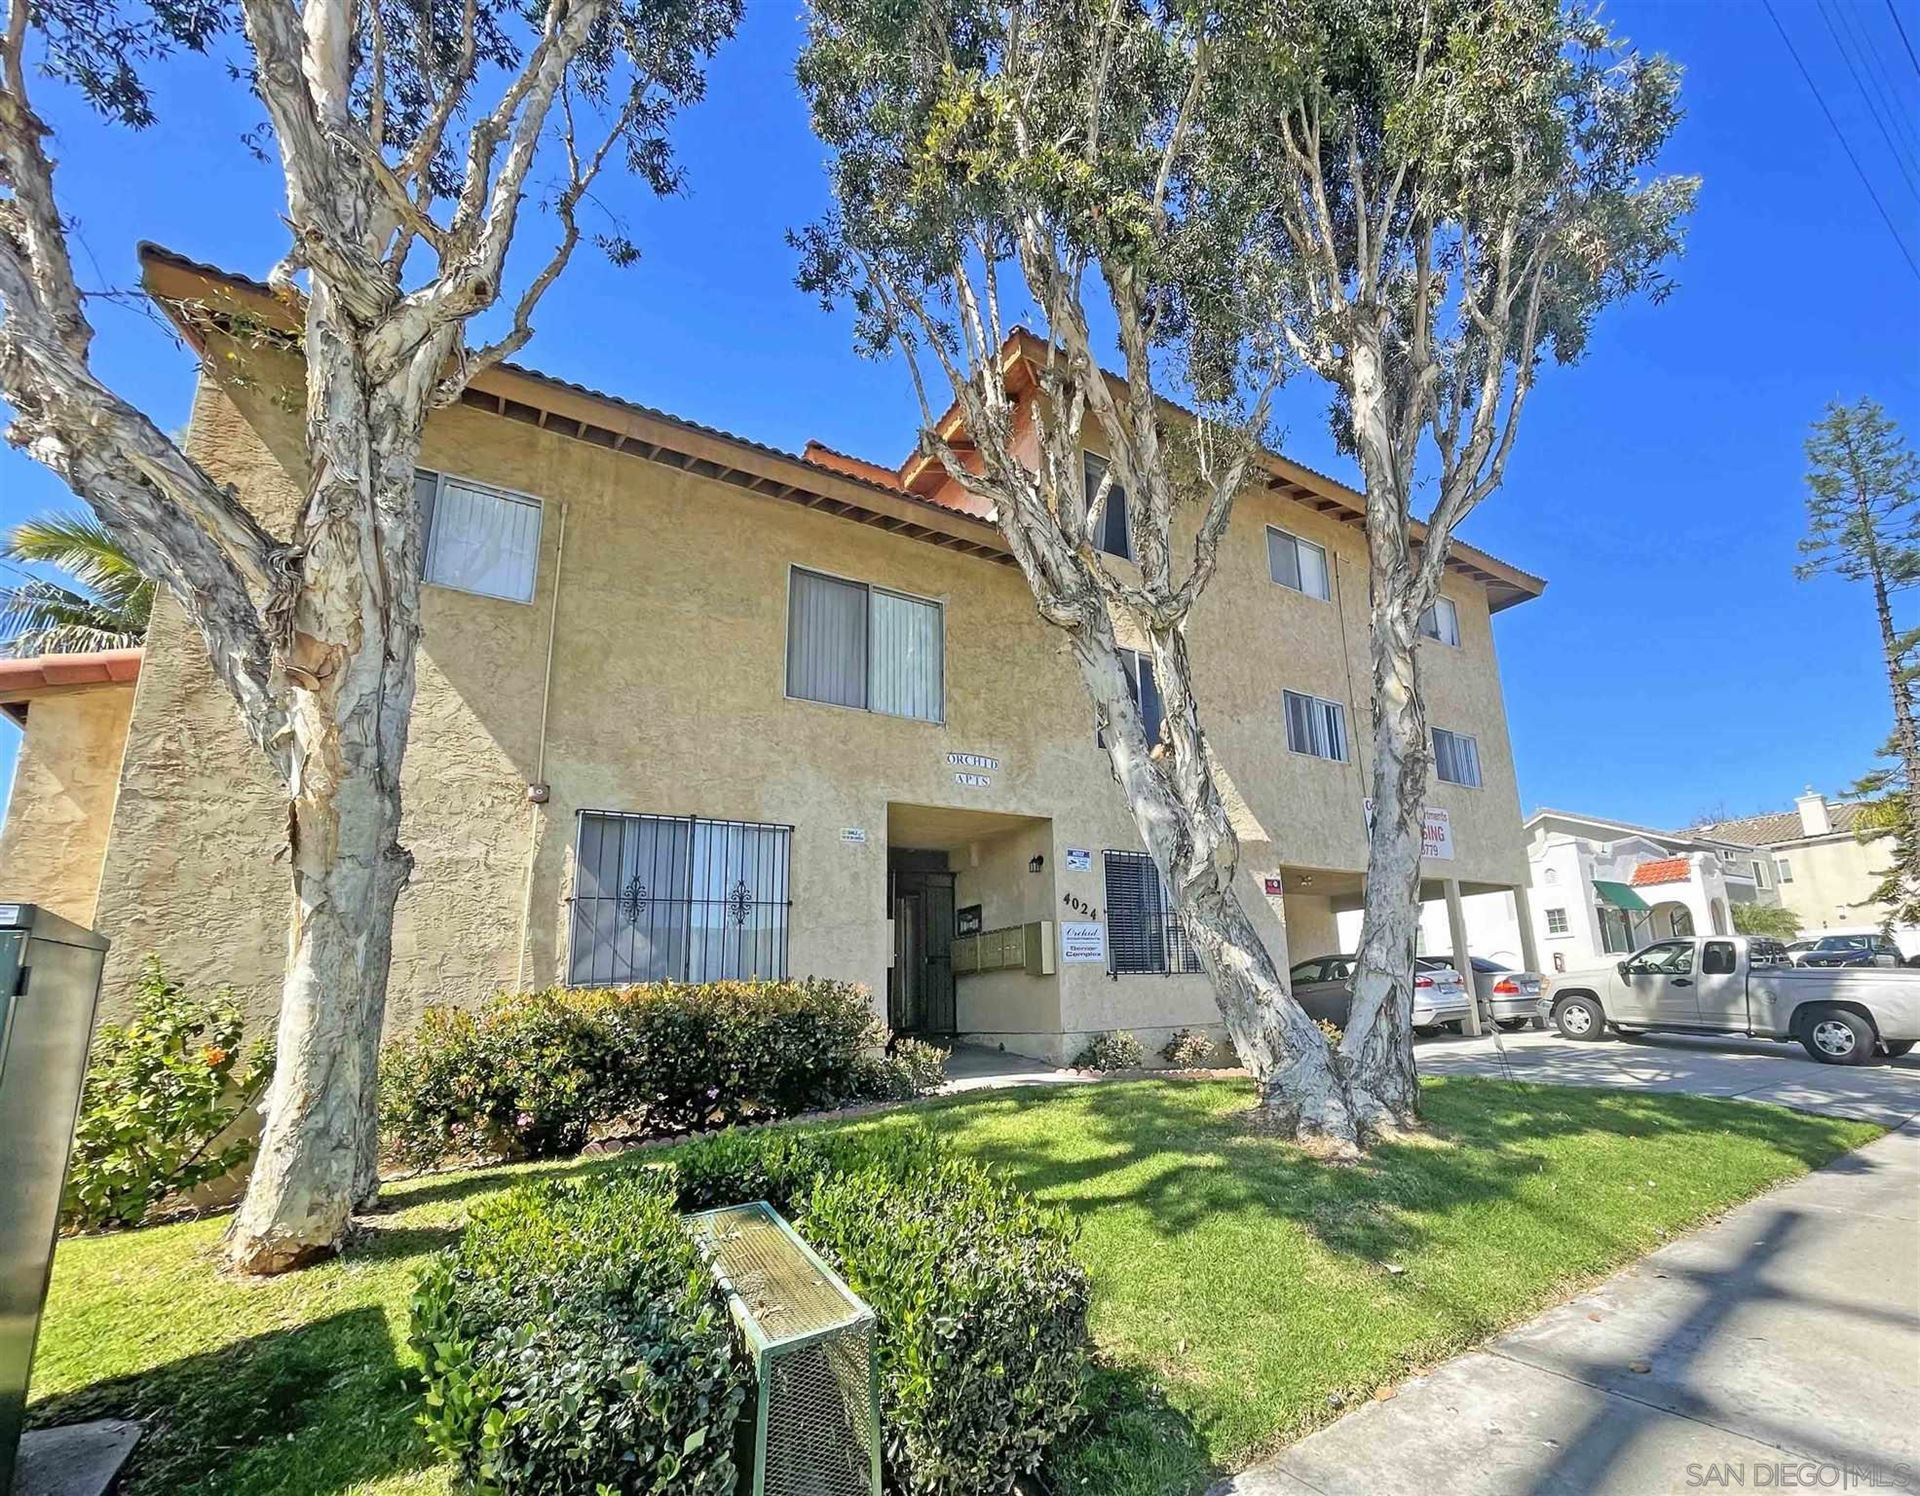 Photo of 4024 32nd St, San Diego, CA 92104 (MLS # 210007491)